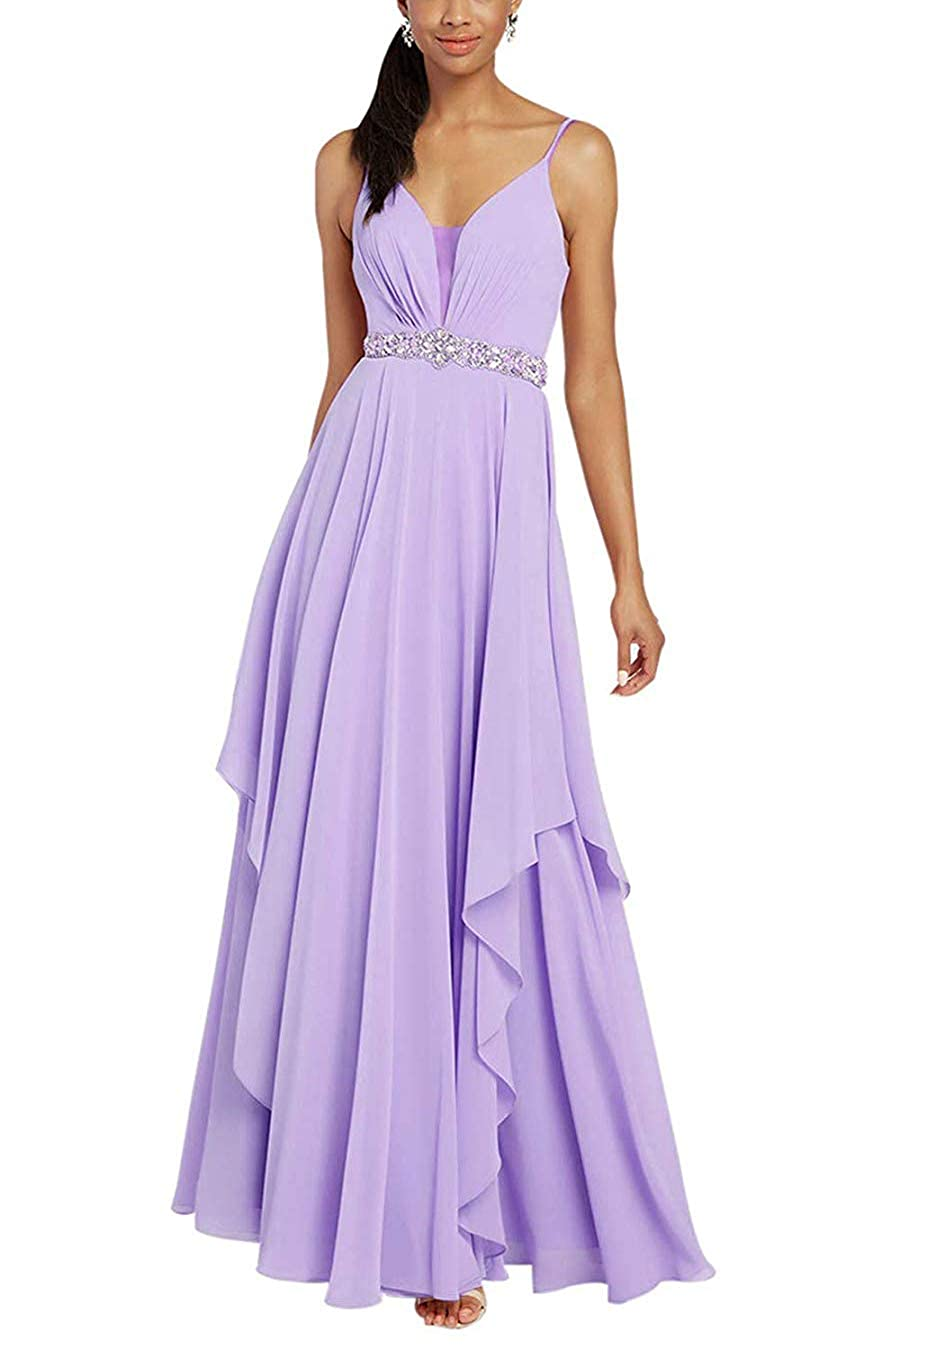 Lavender Stylefun Spaghetii Strap Bridesmaid Dress for Women Ruched Skirt Evening Formal Gowns with Beaded Belt KN025